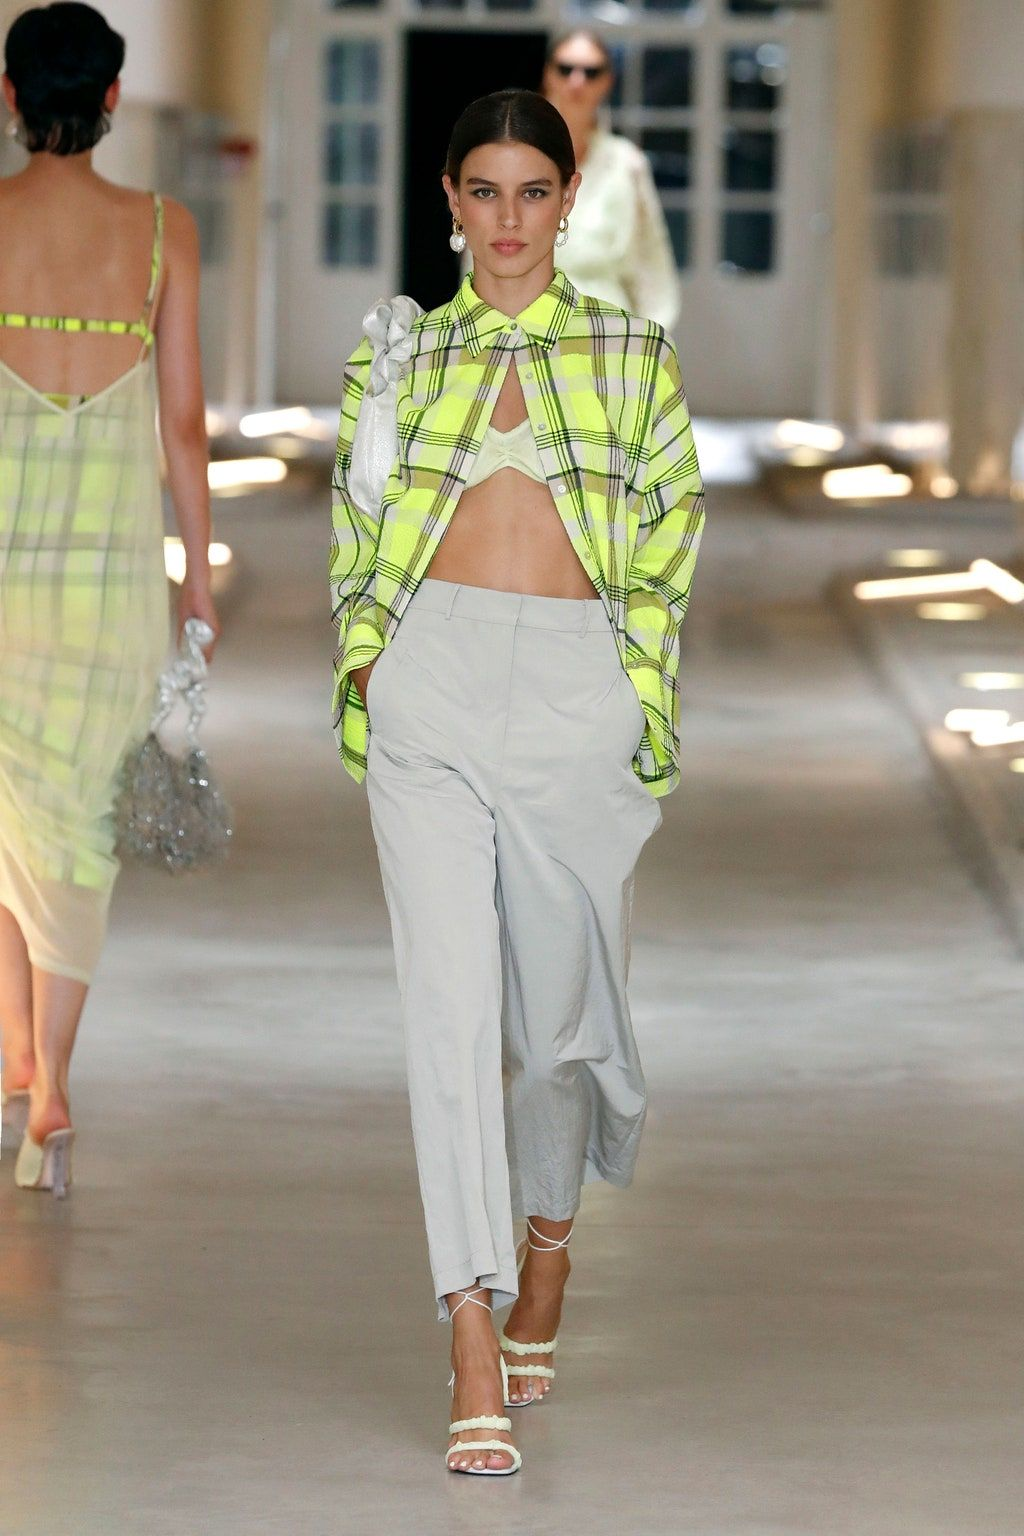 Pin On Fashion Trend 2021 3